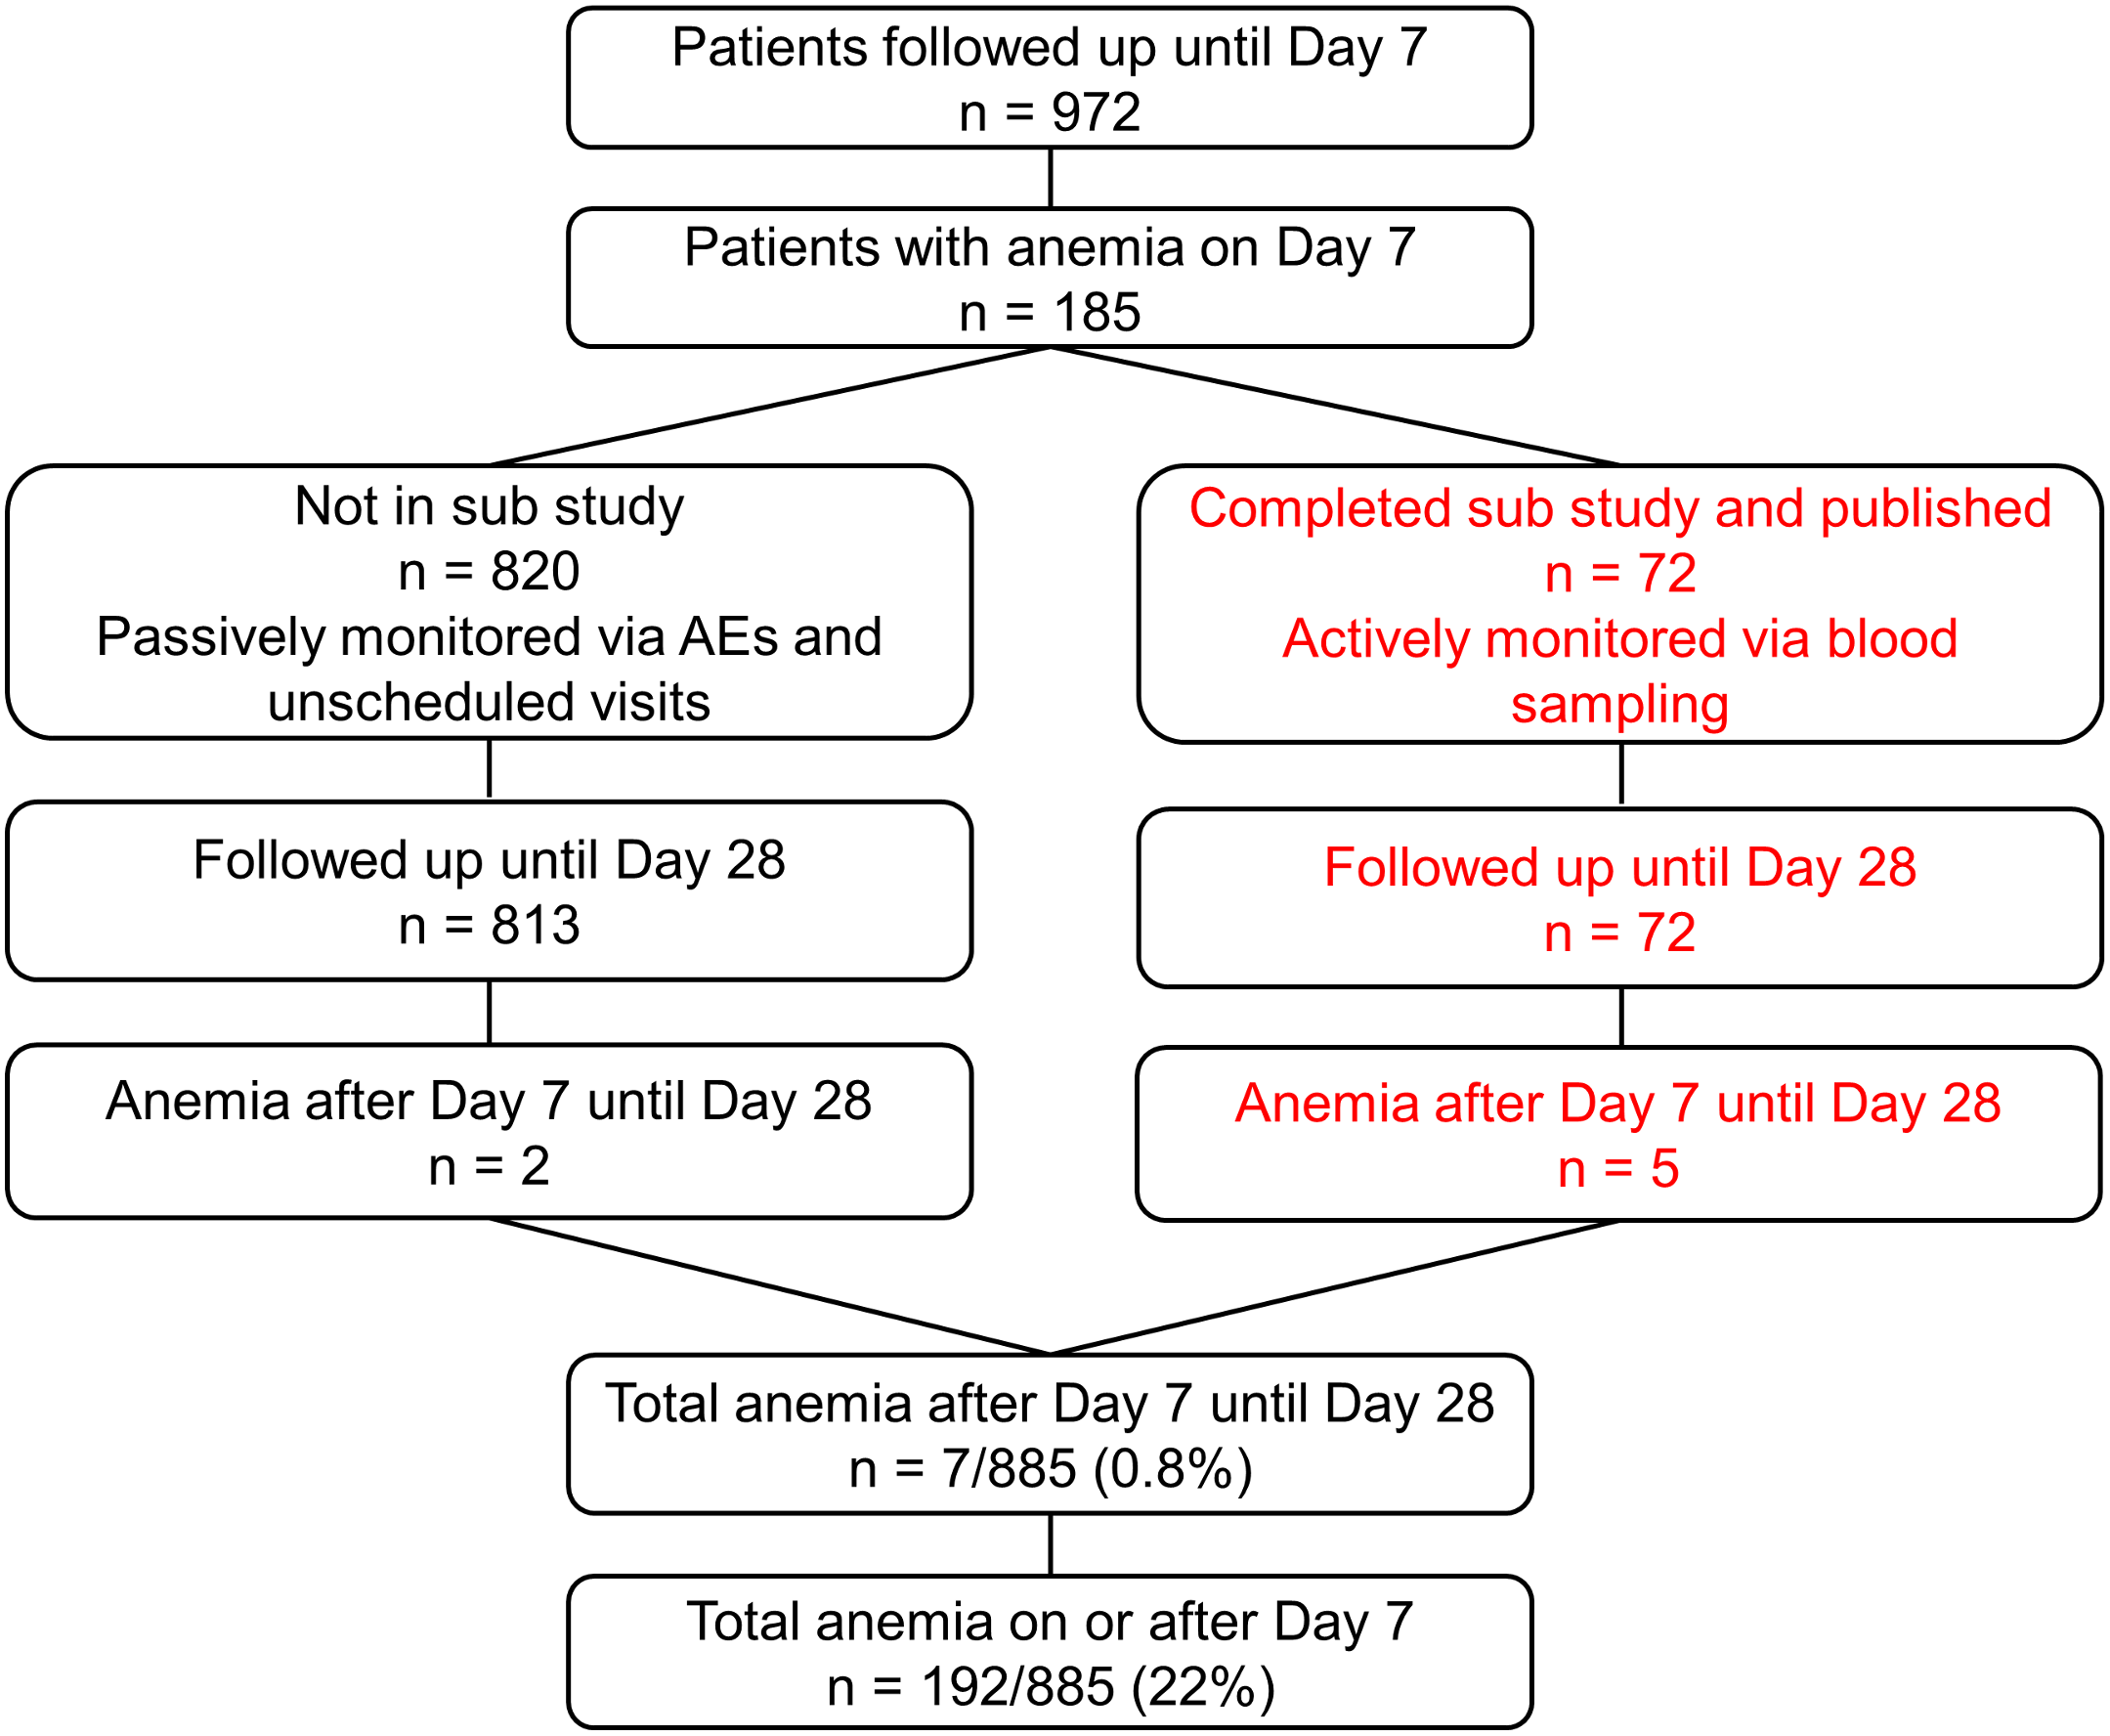 Post hoc analyses of patients with anemia.